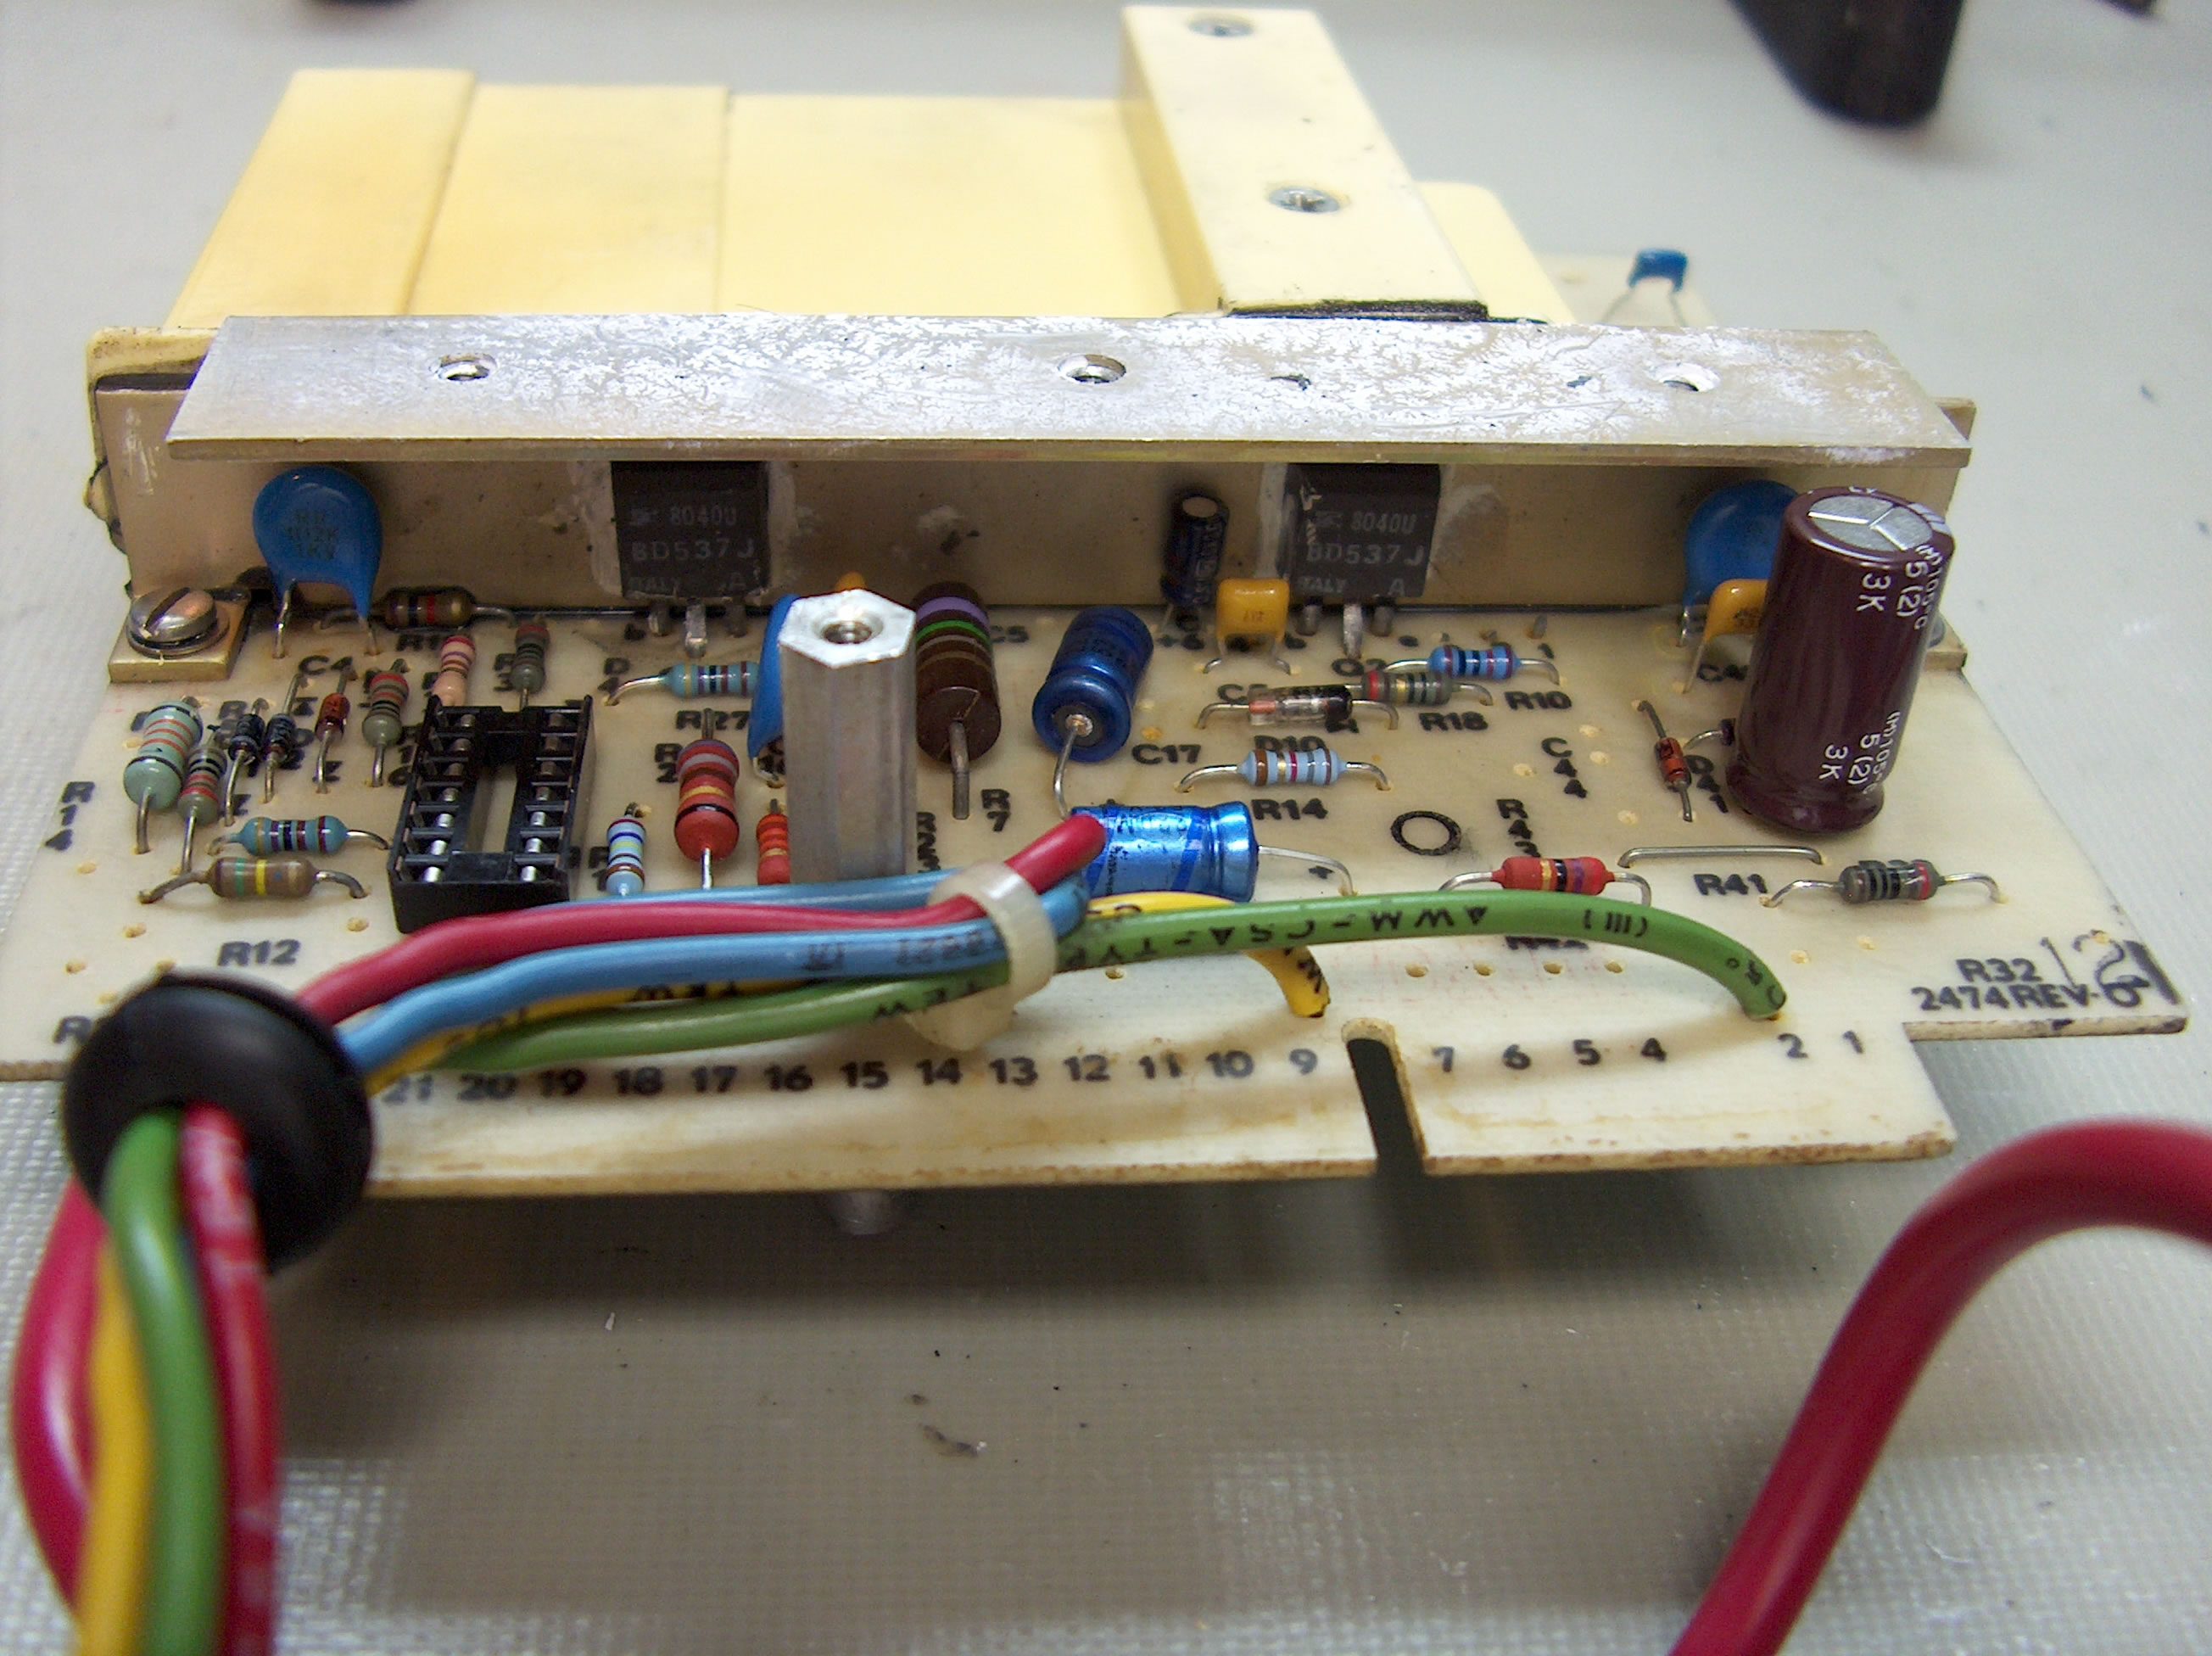 Fix The Whole Circuit Assembly Along With The Transformer Inside A